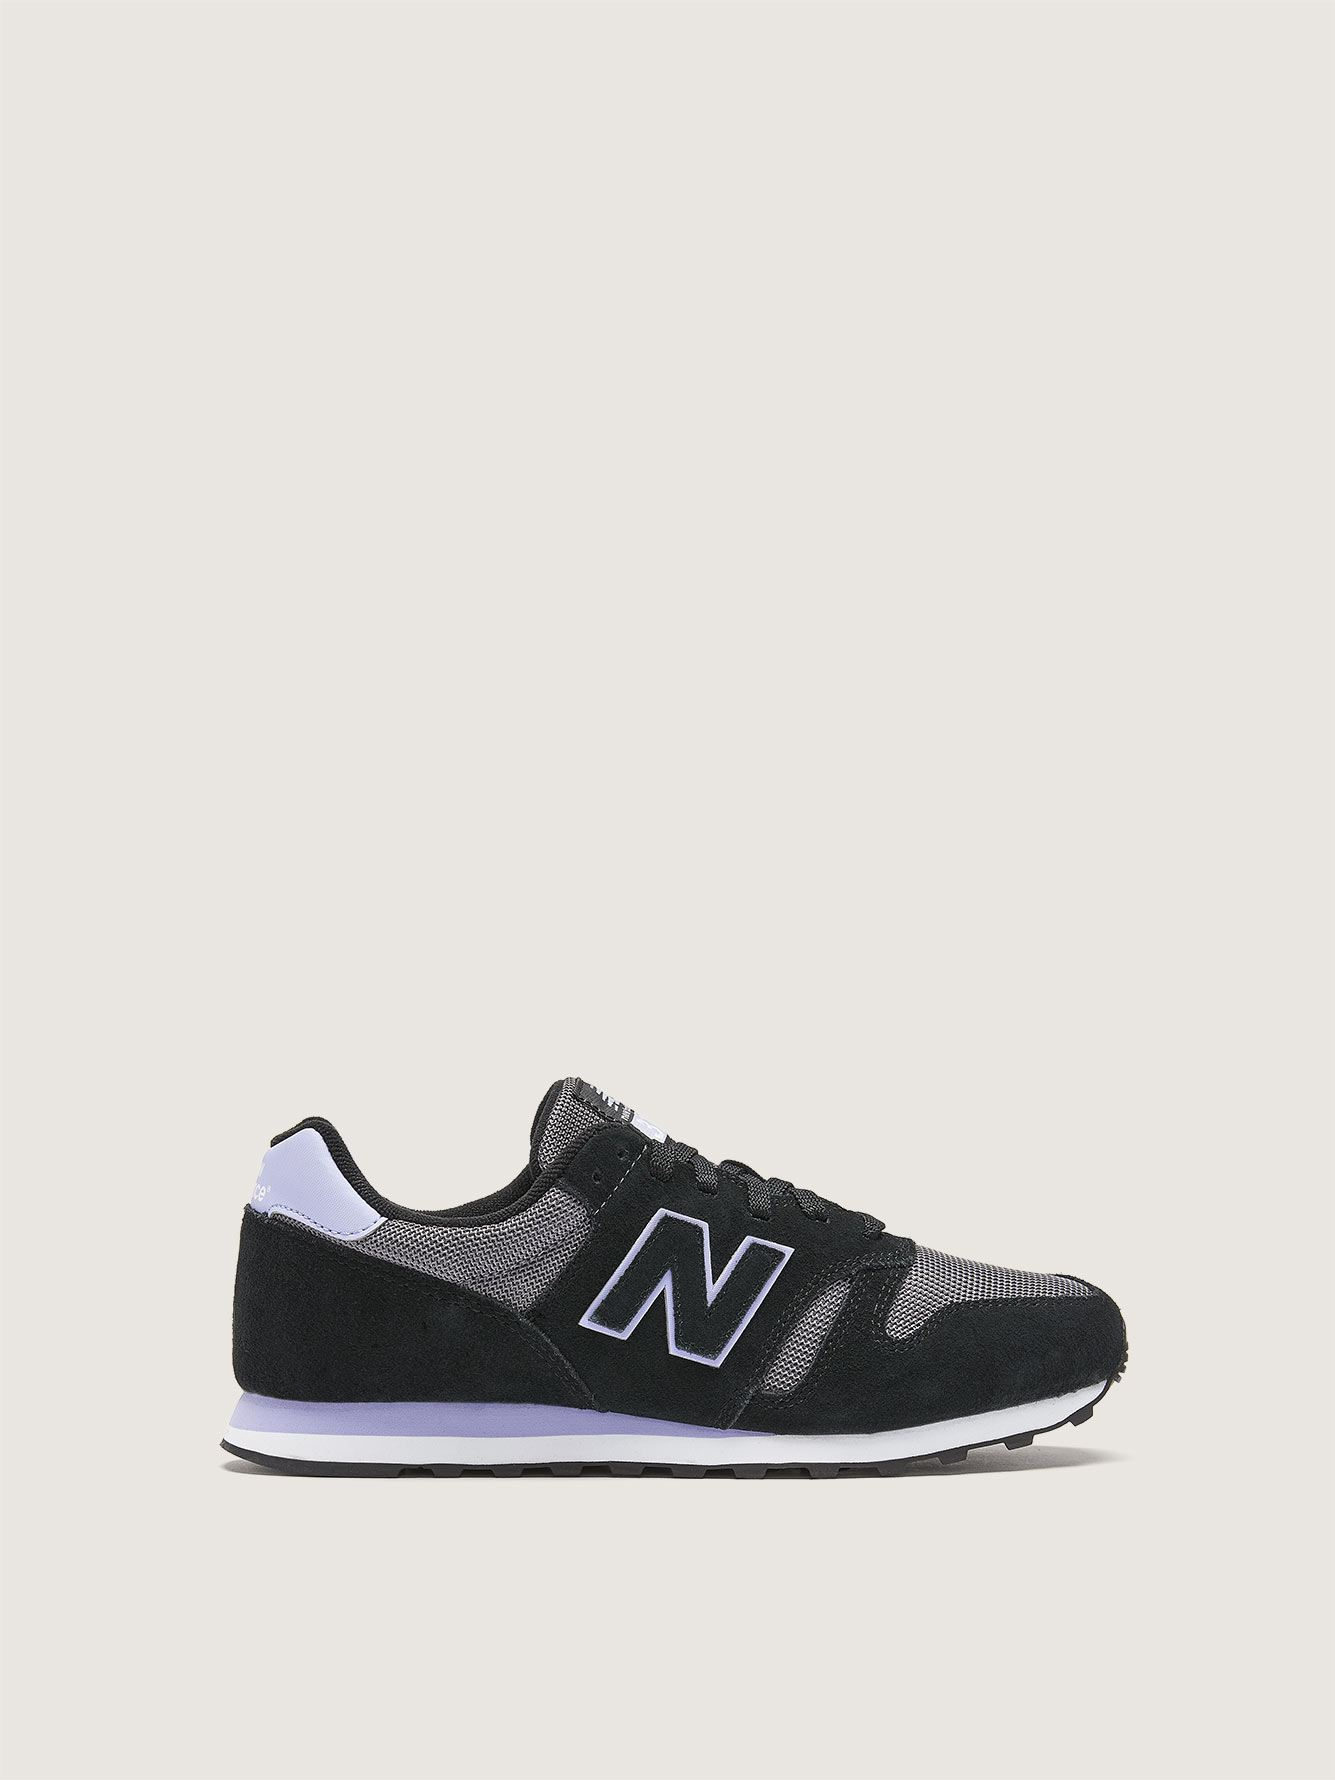 Chaussures sport Lifestyle, pieds larges - New Balance